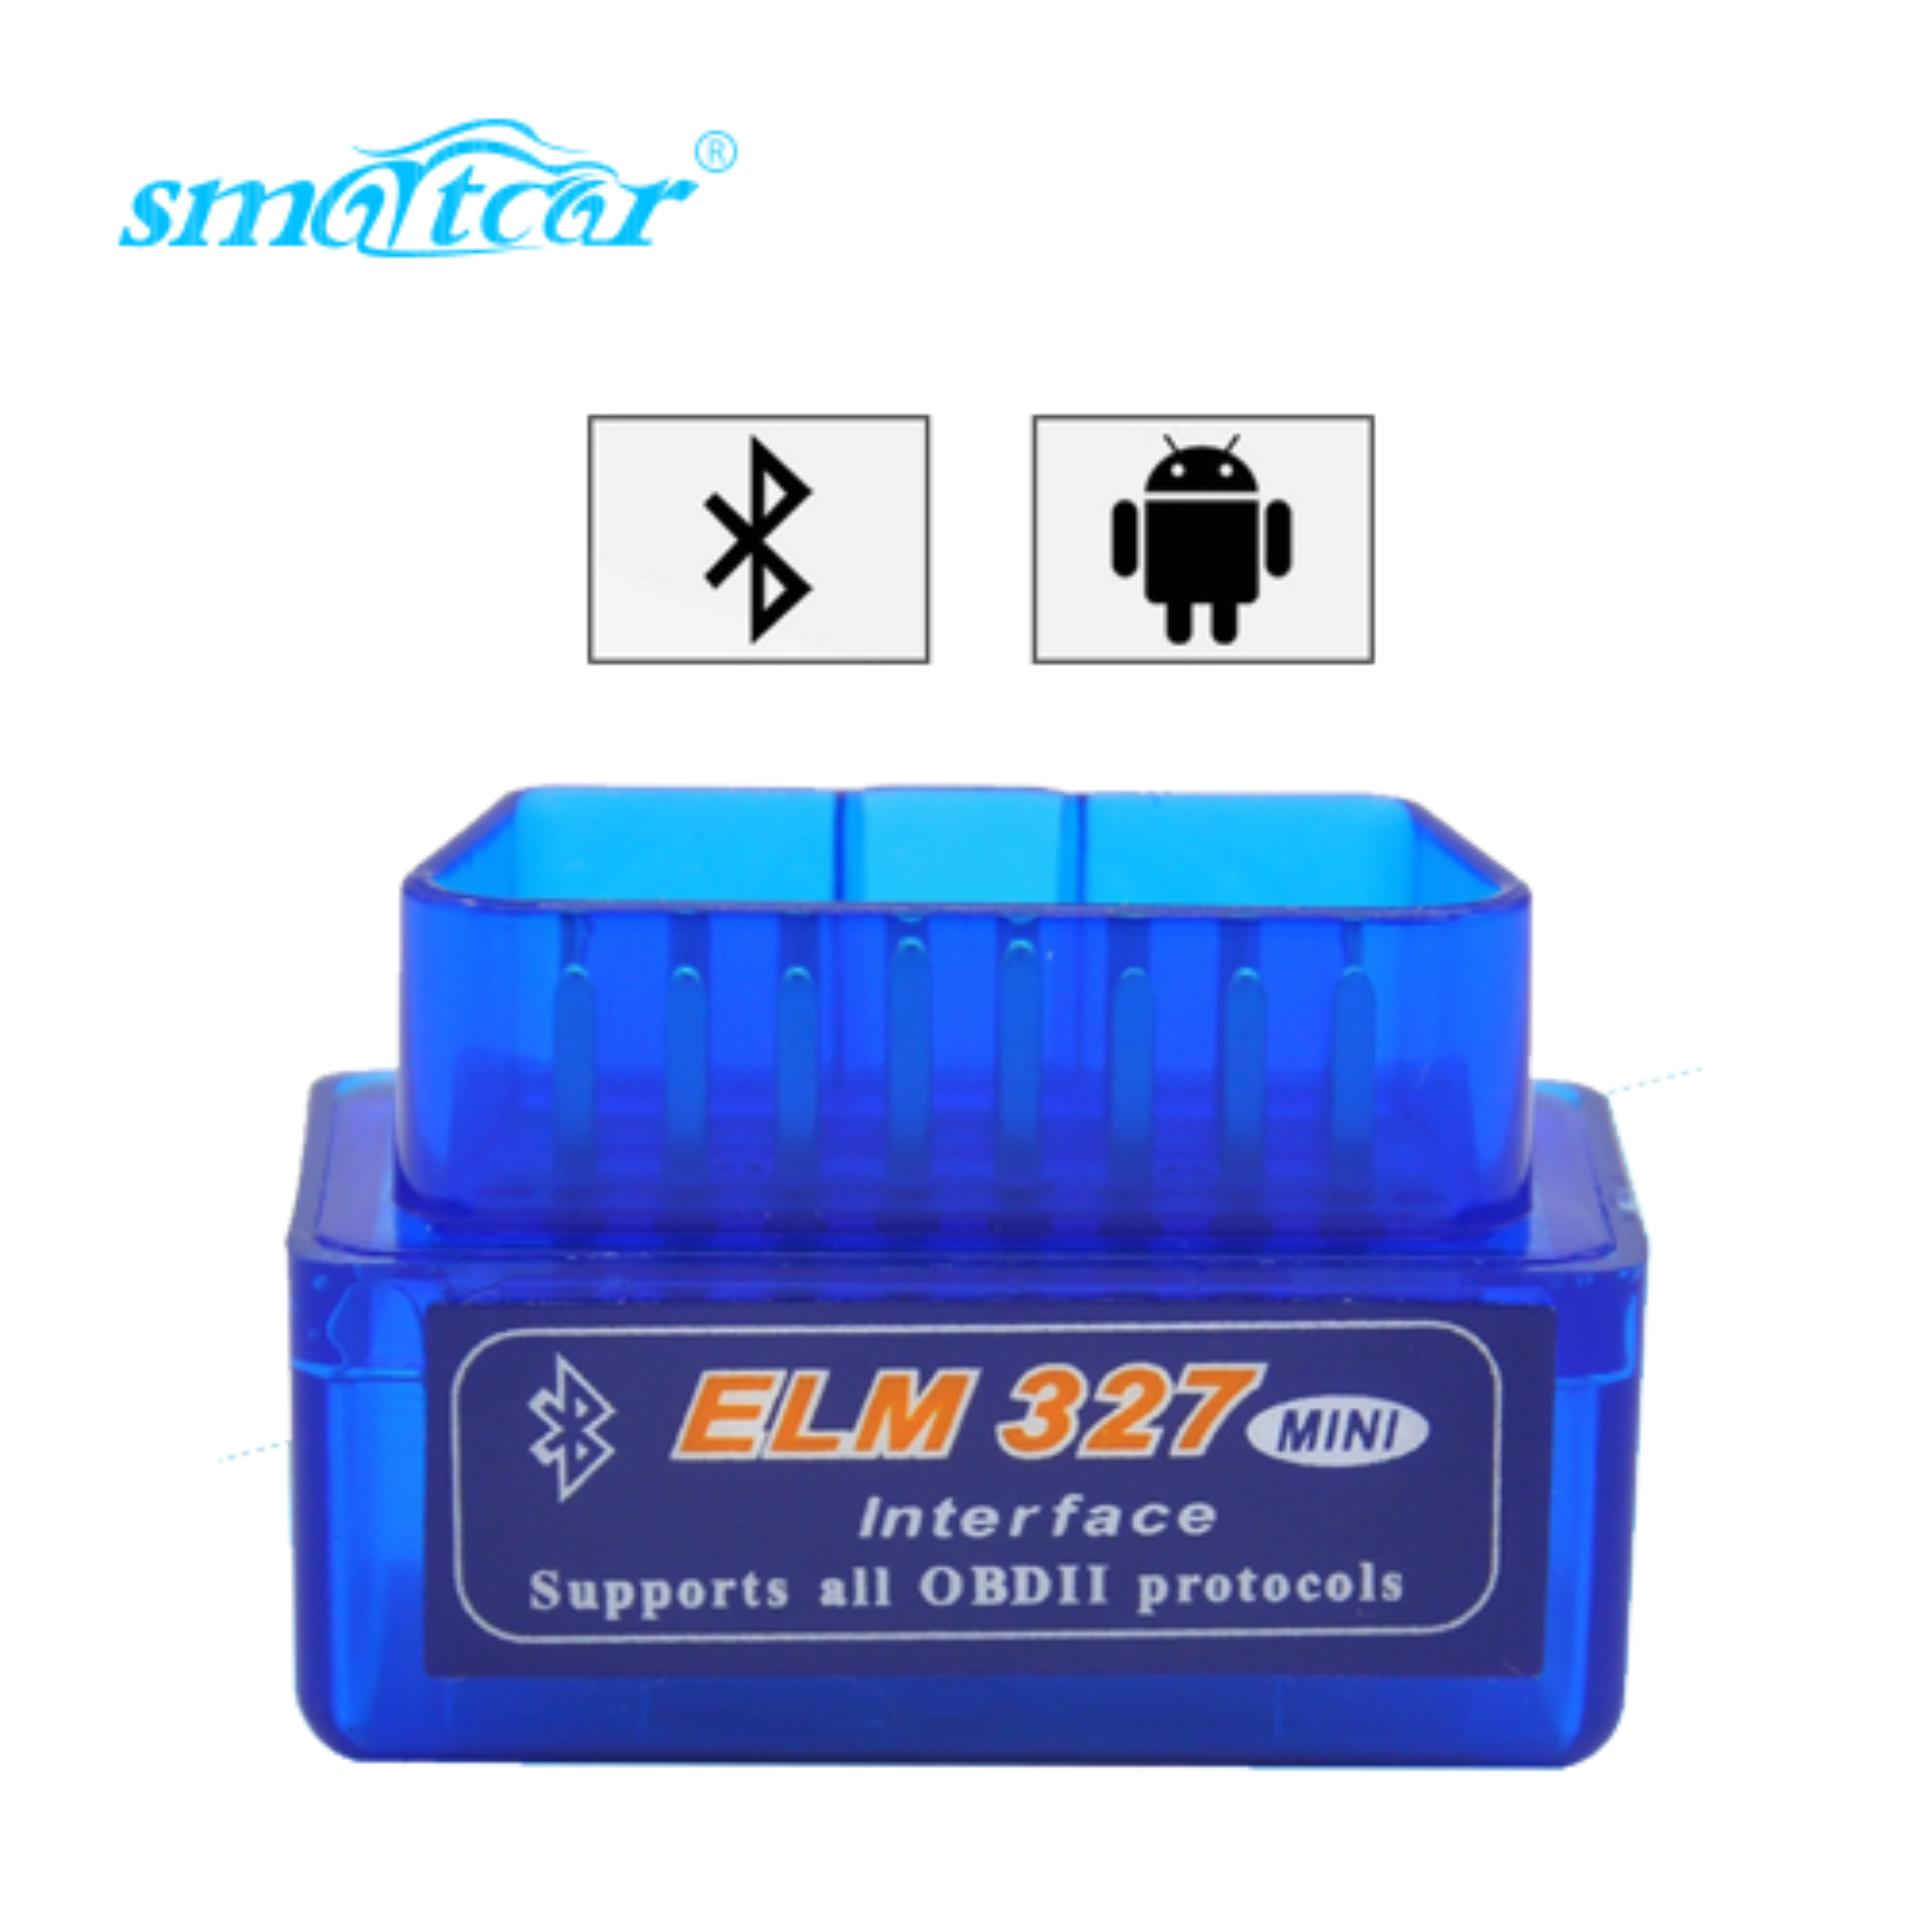 Super Mini Elm 327 Bluetooth Obd Ii Obd 2 Works On Android Torque By Smartcar.